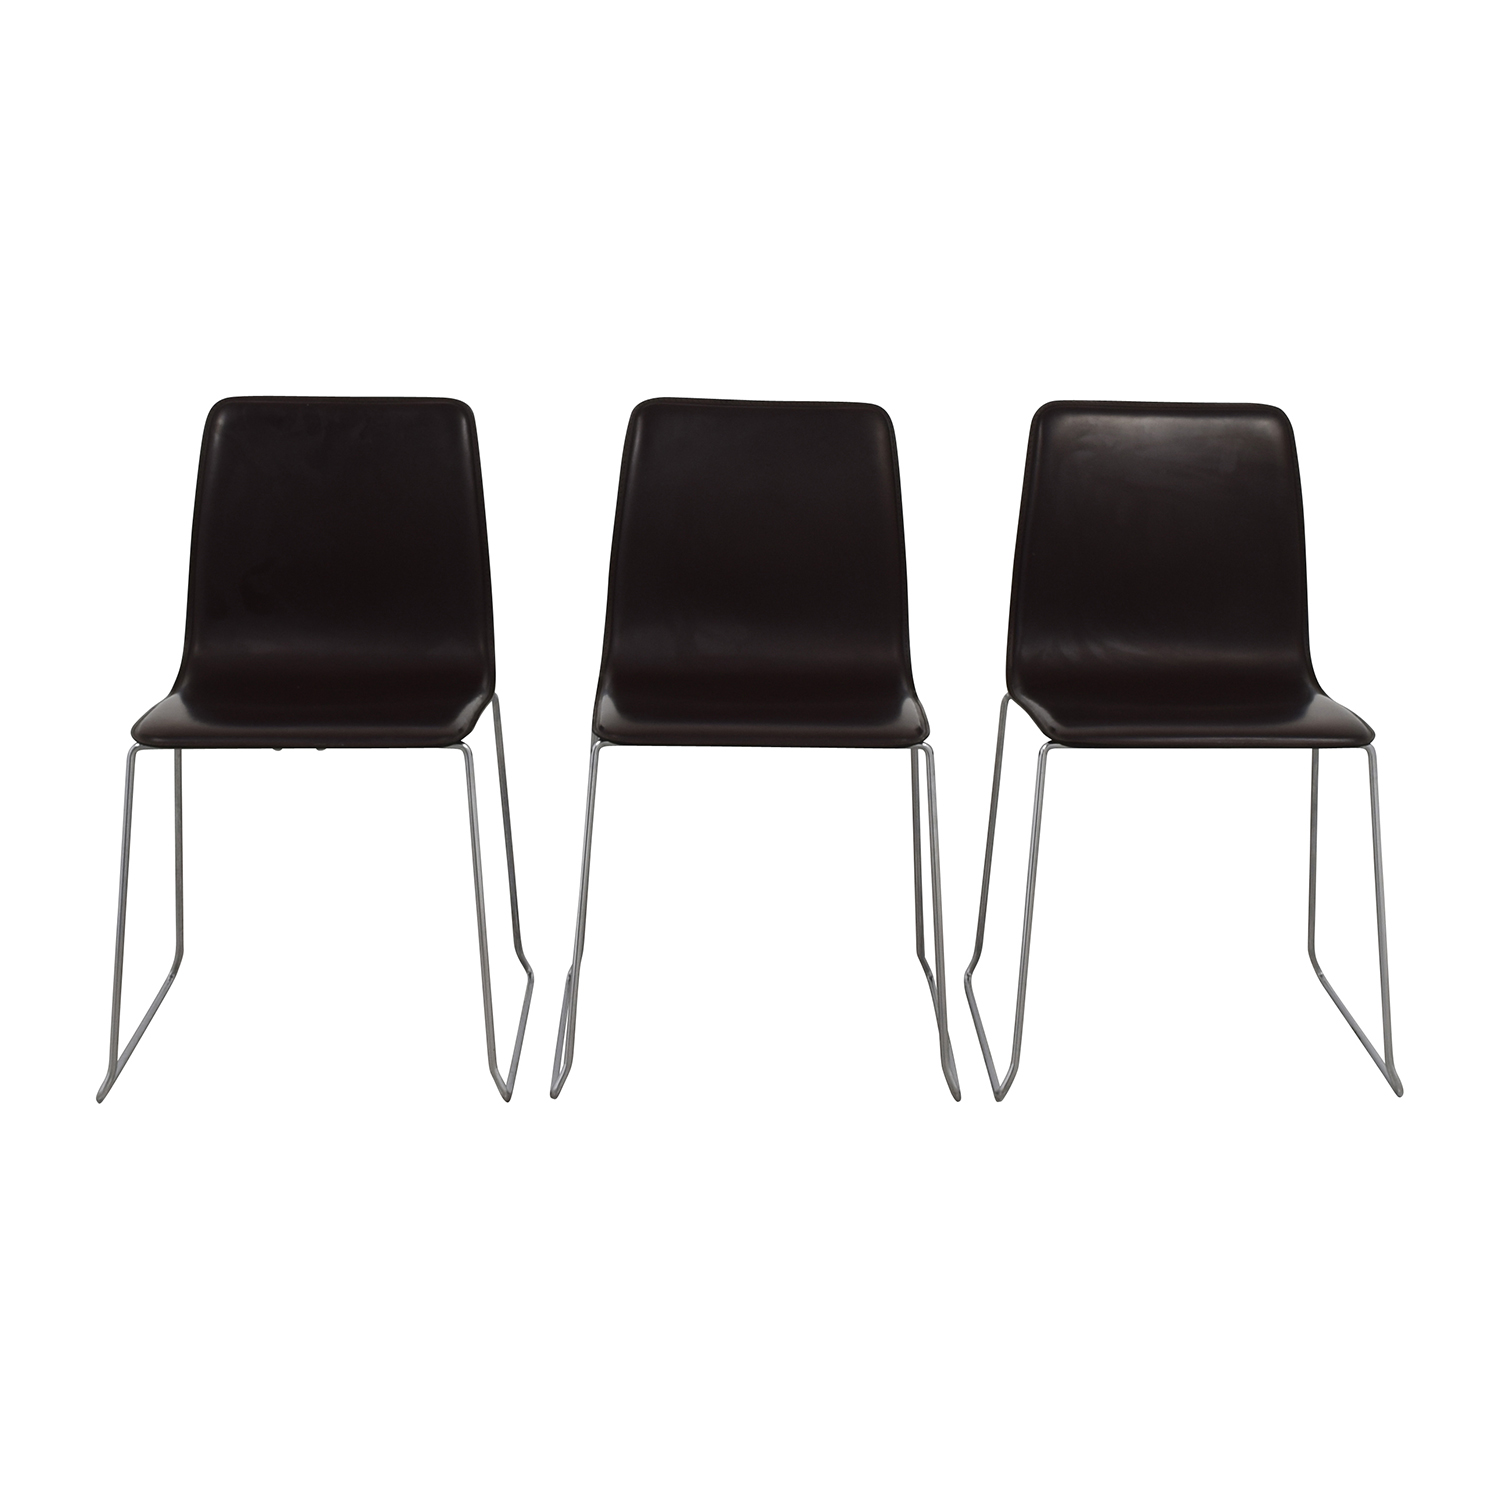 ABC Home & Carpet ABC Home & Carpet Leather and Chrome Chairs, Set of Three coupon